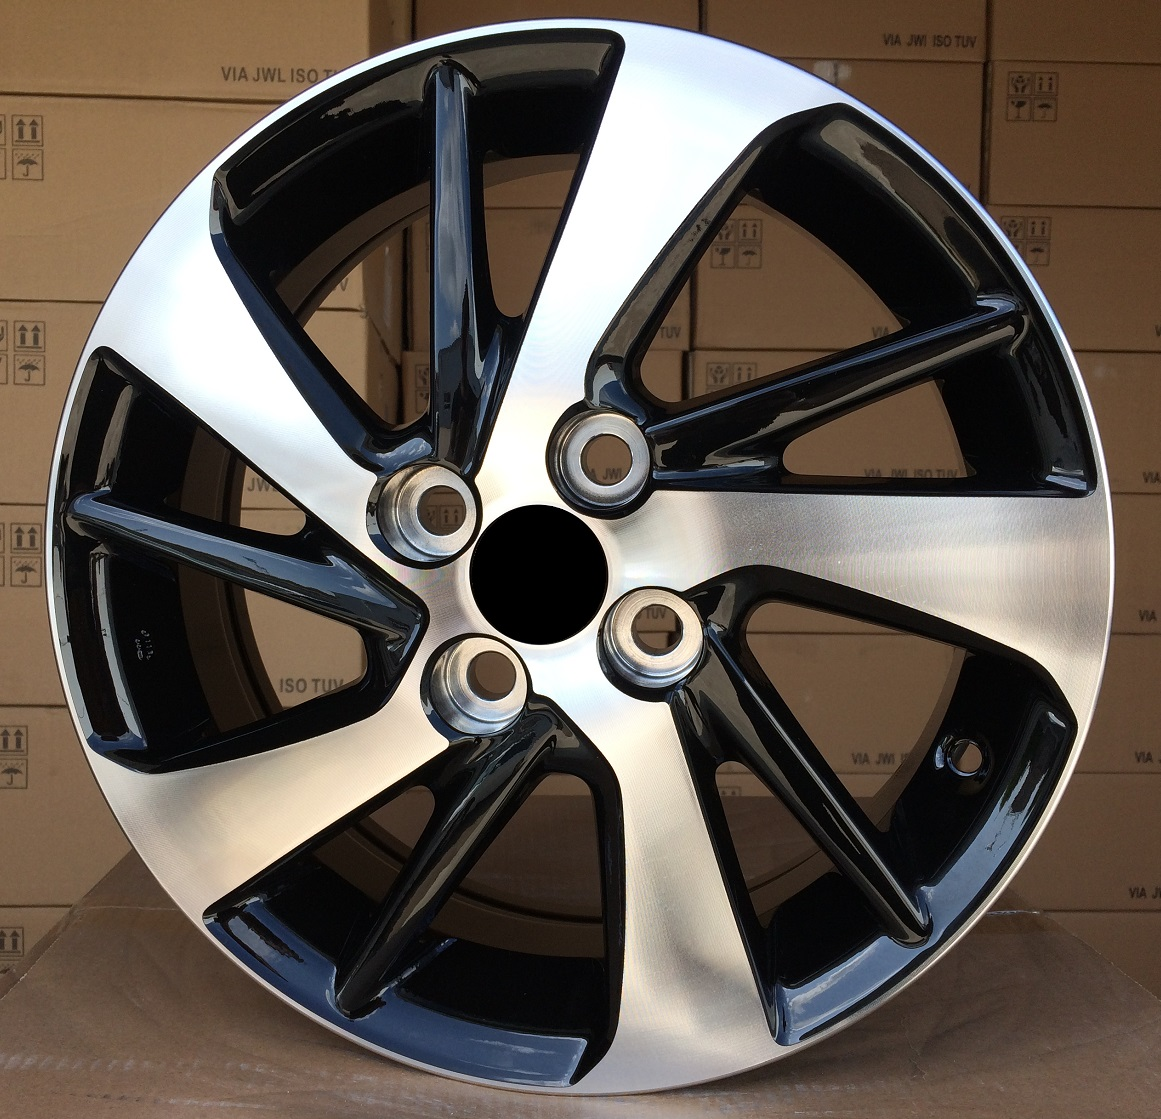 T14X5.5 4X100 ET45 54.1 TL0458NW MB+POWDER COATING RWR TOY (+2eur) (D5)## 5.5x14 ET46 4x100